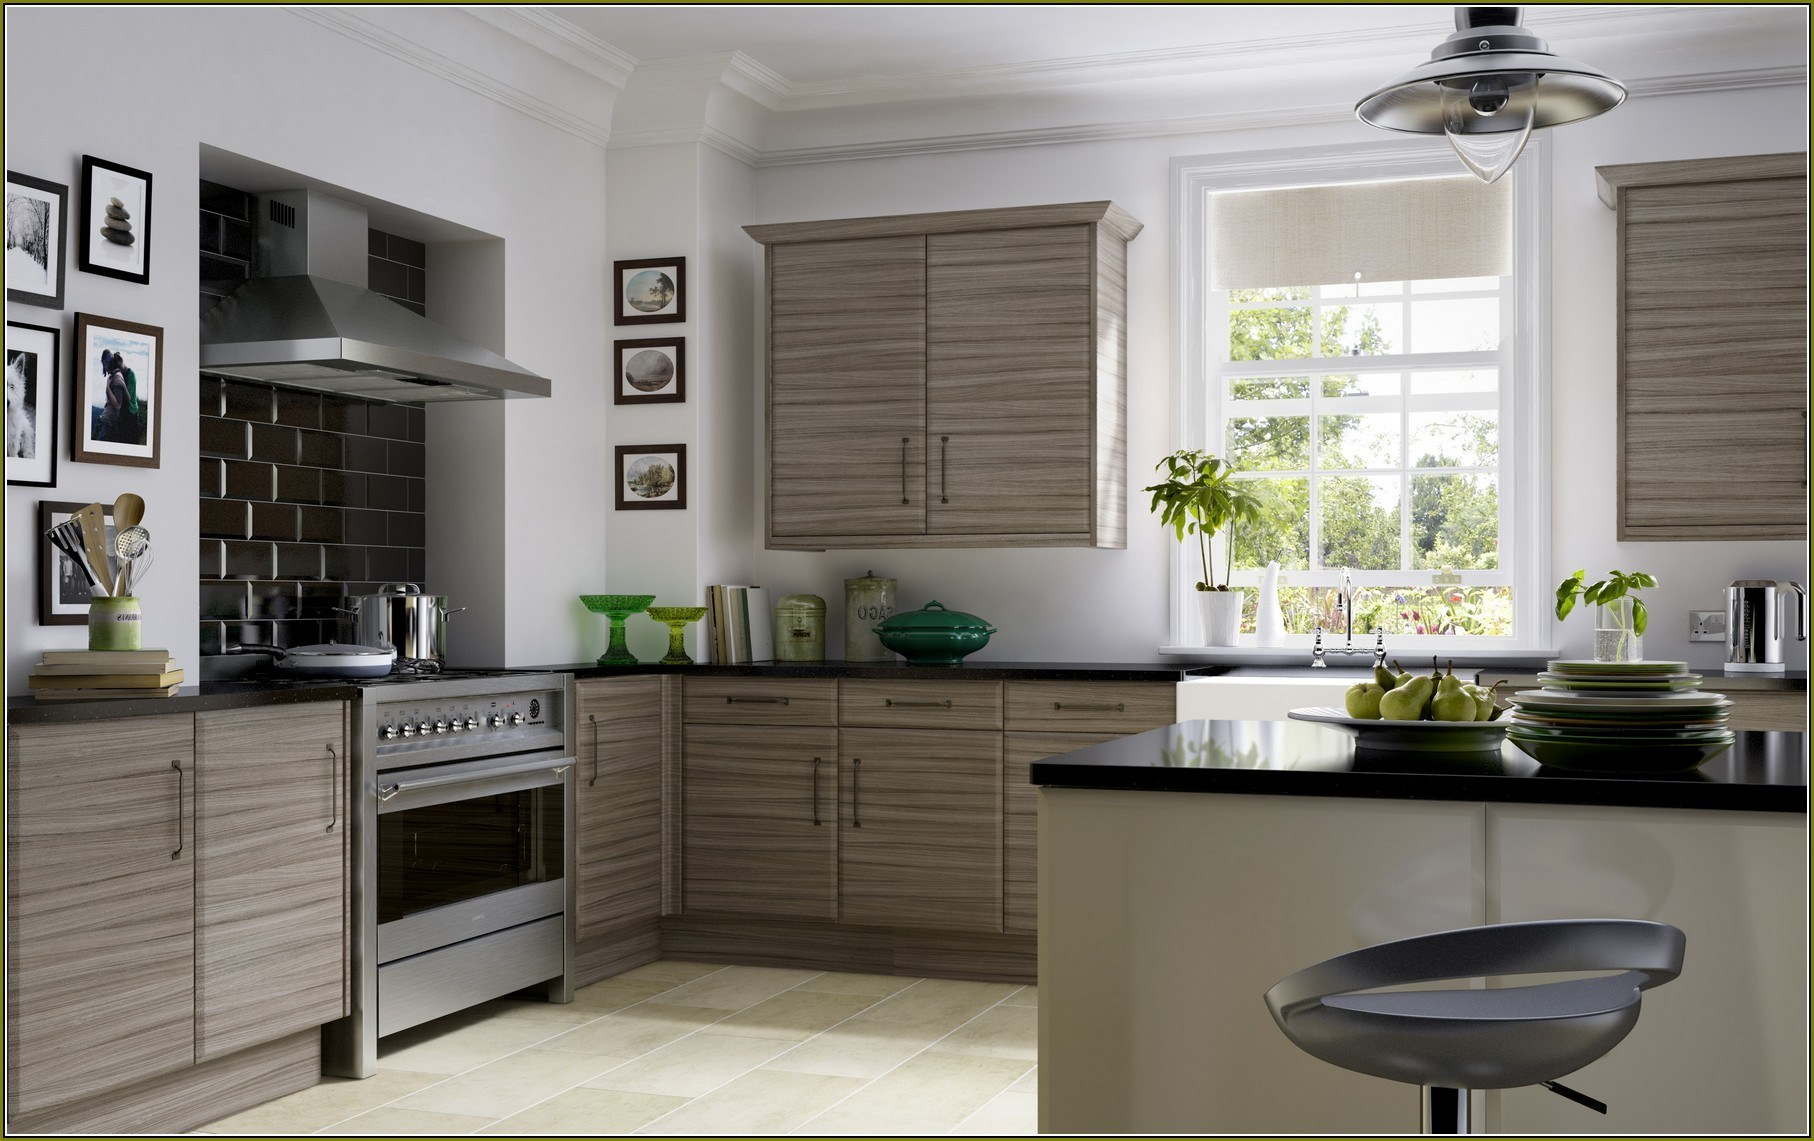 Kitchen Cabinet Manufacturers Nj Home Design Ideas Baneproject